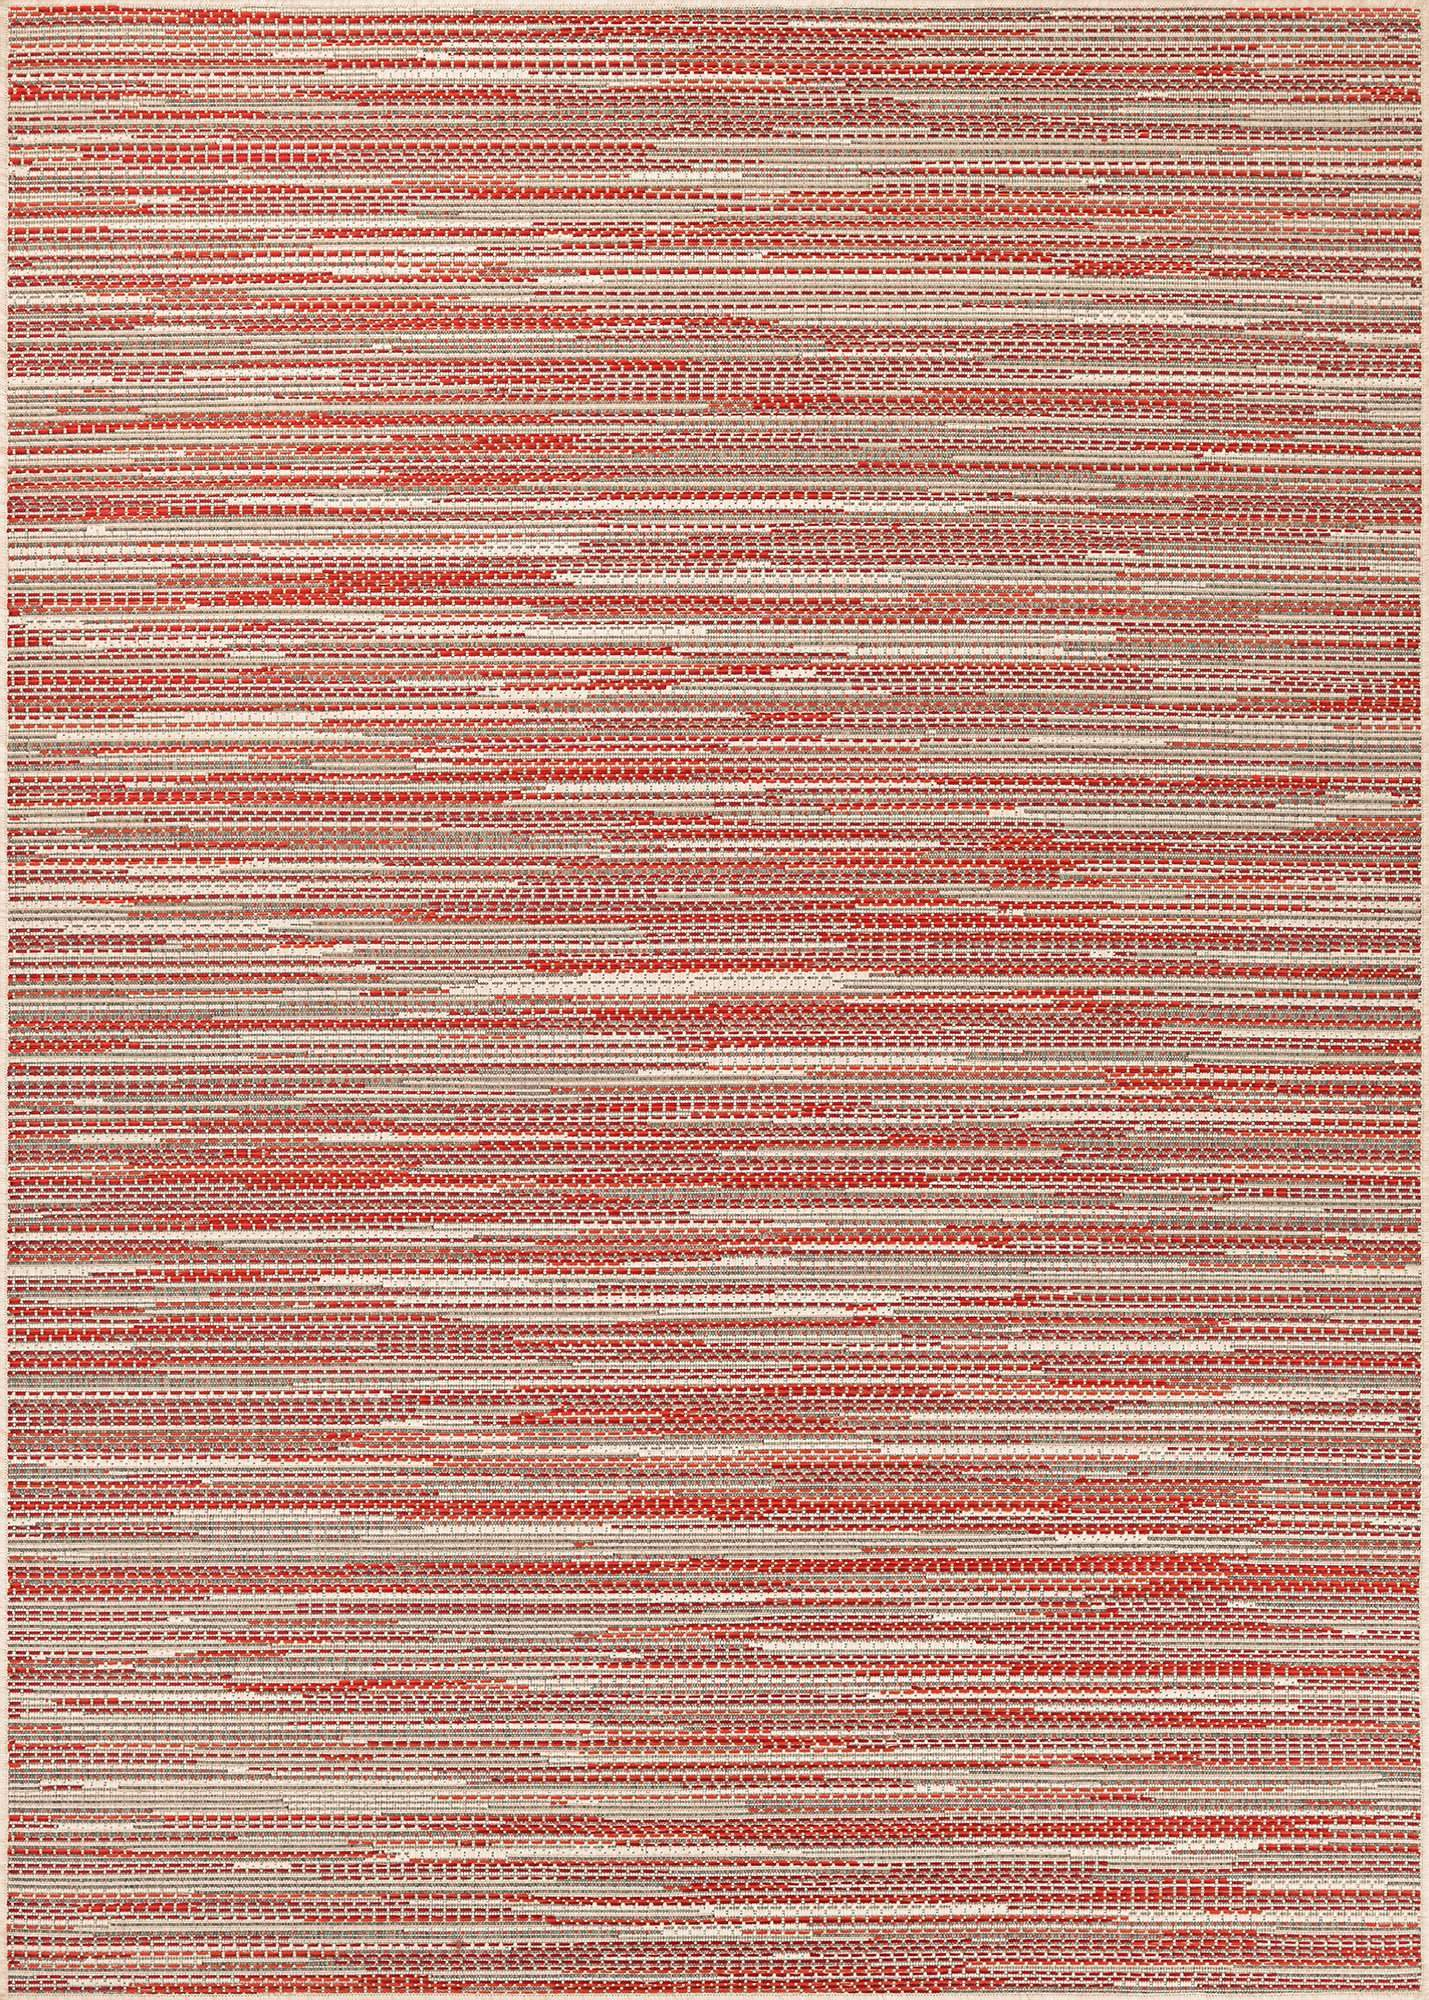 Monaco Alassio Orange Outdoor Rugs-Rug Shop and More